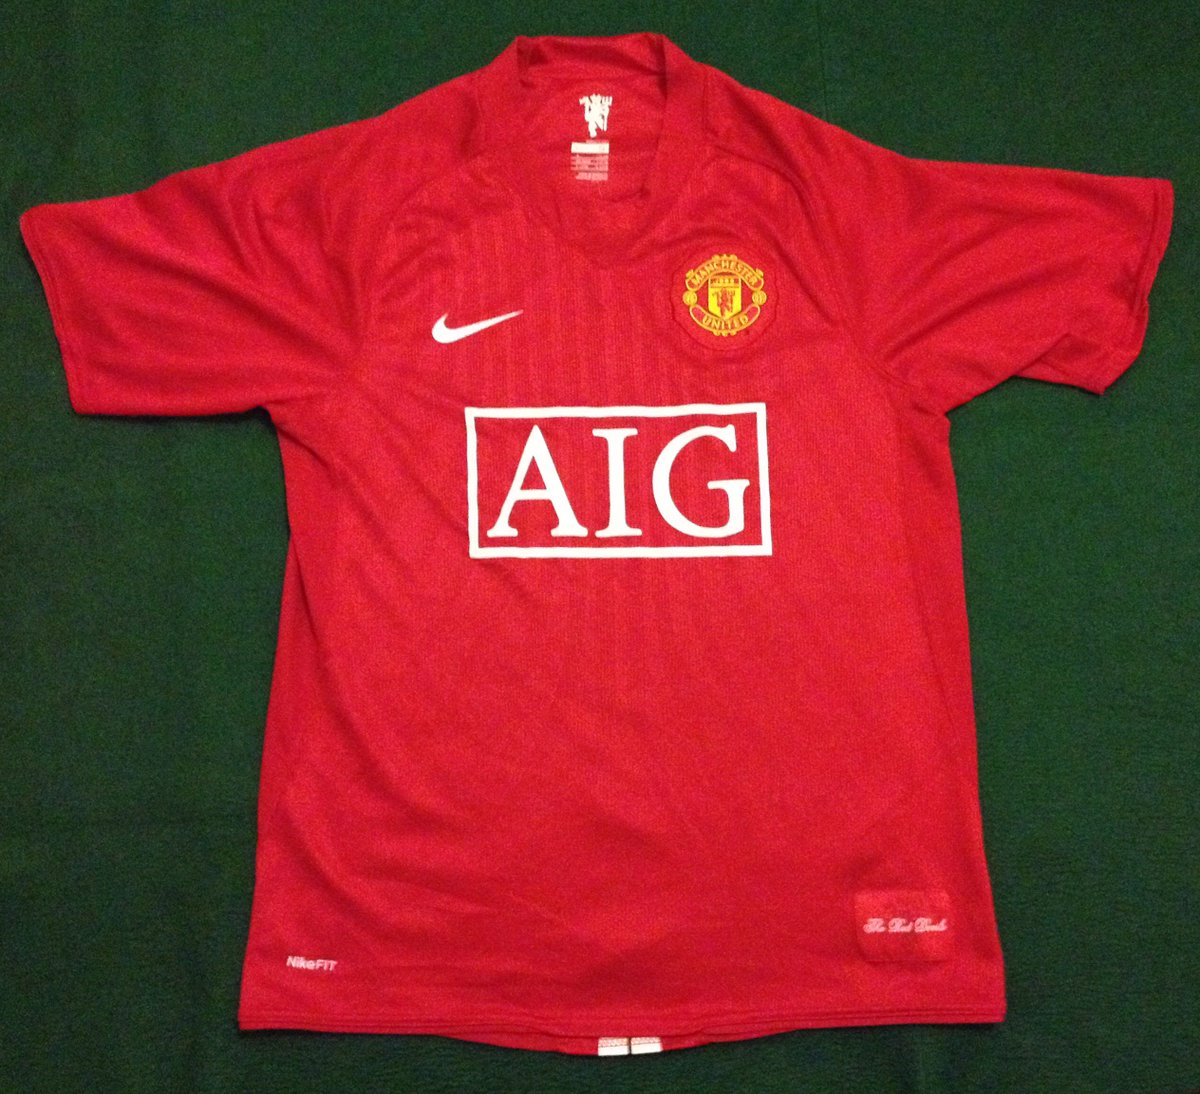 ae7d0c6db11 Man Utd Shirts Uk – EDGE Engineering and Consulting Limited